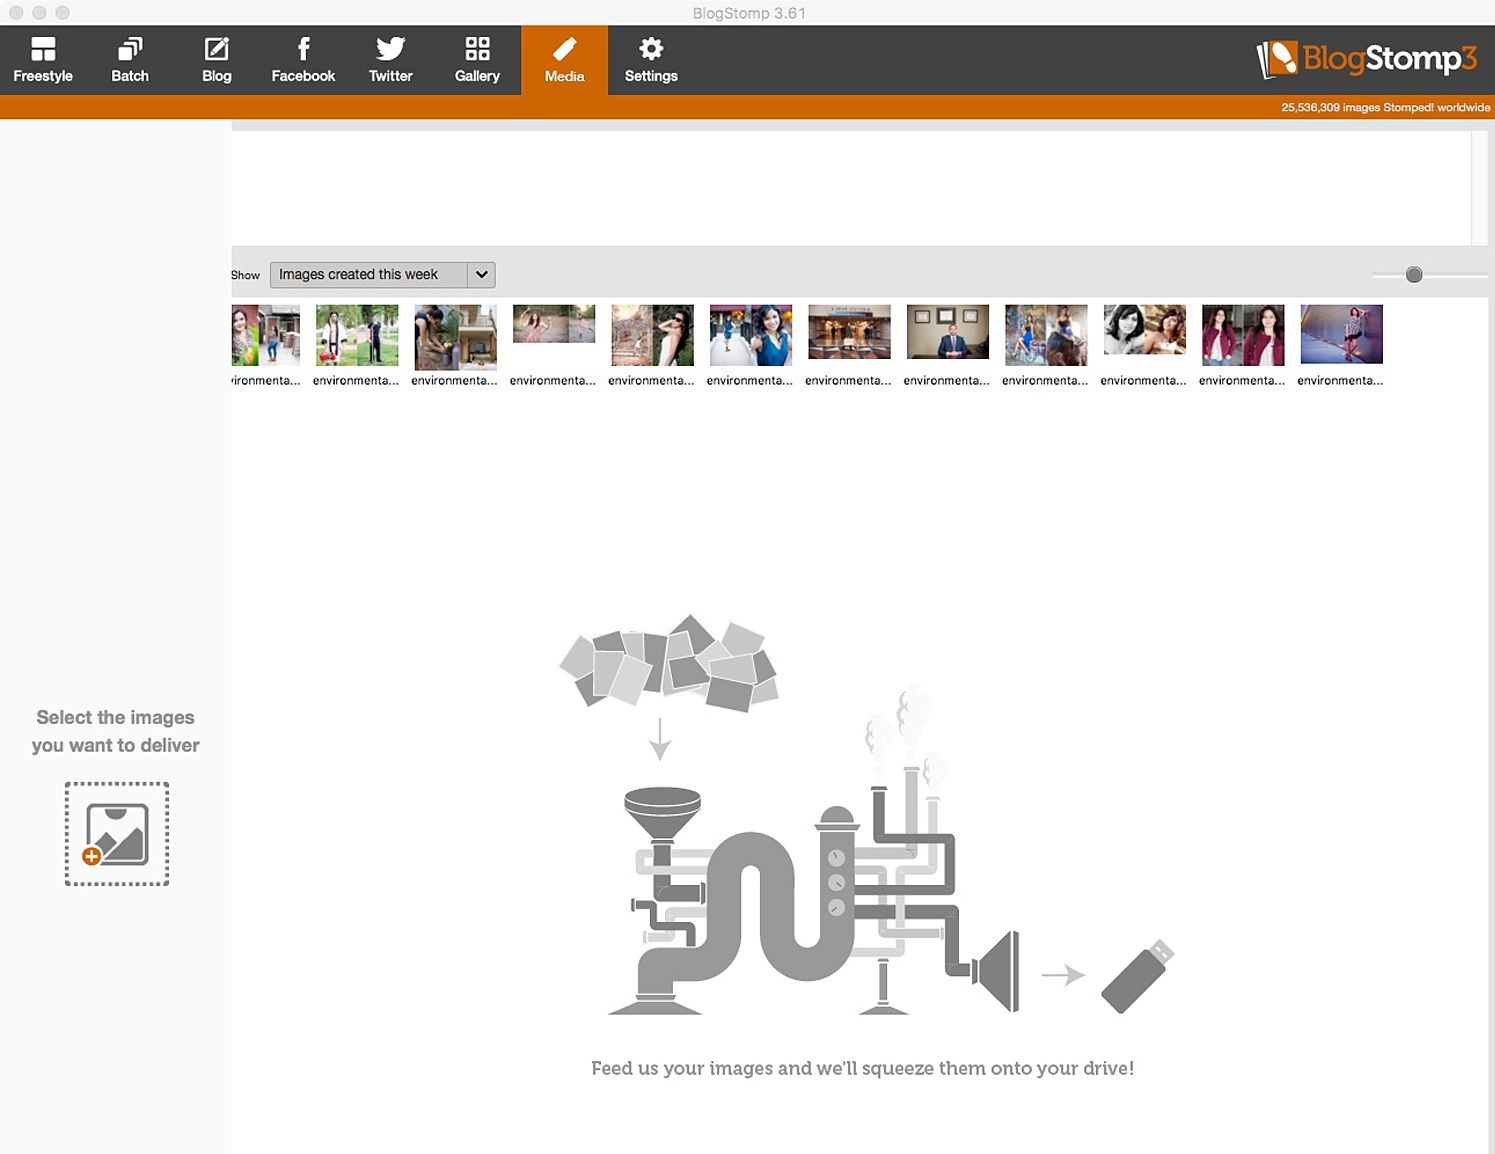 Review of BlogStomp Software for Photographers